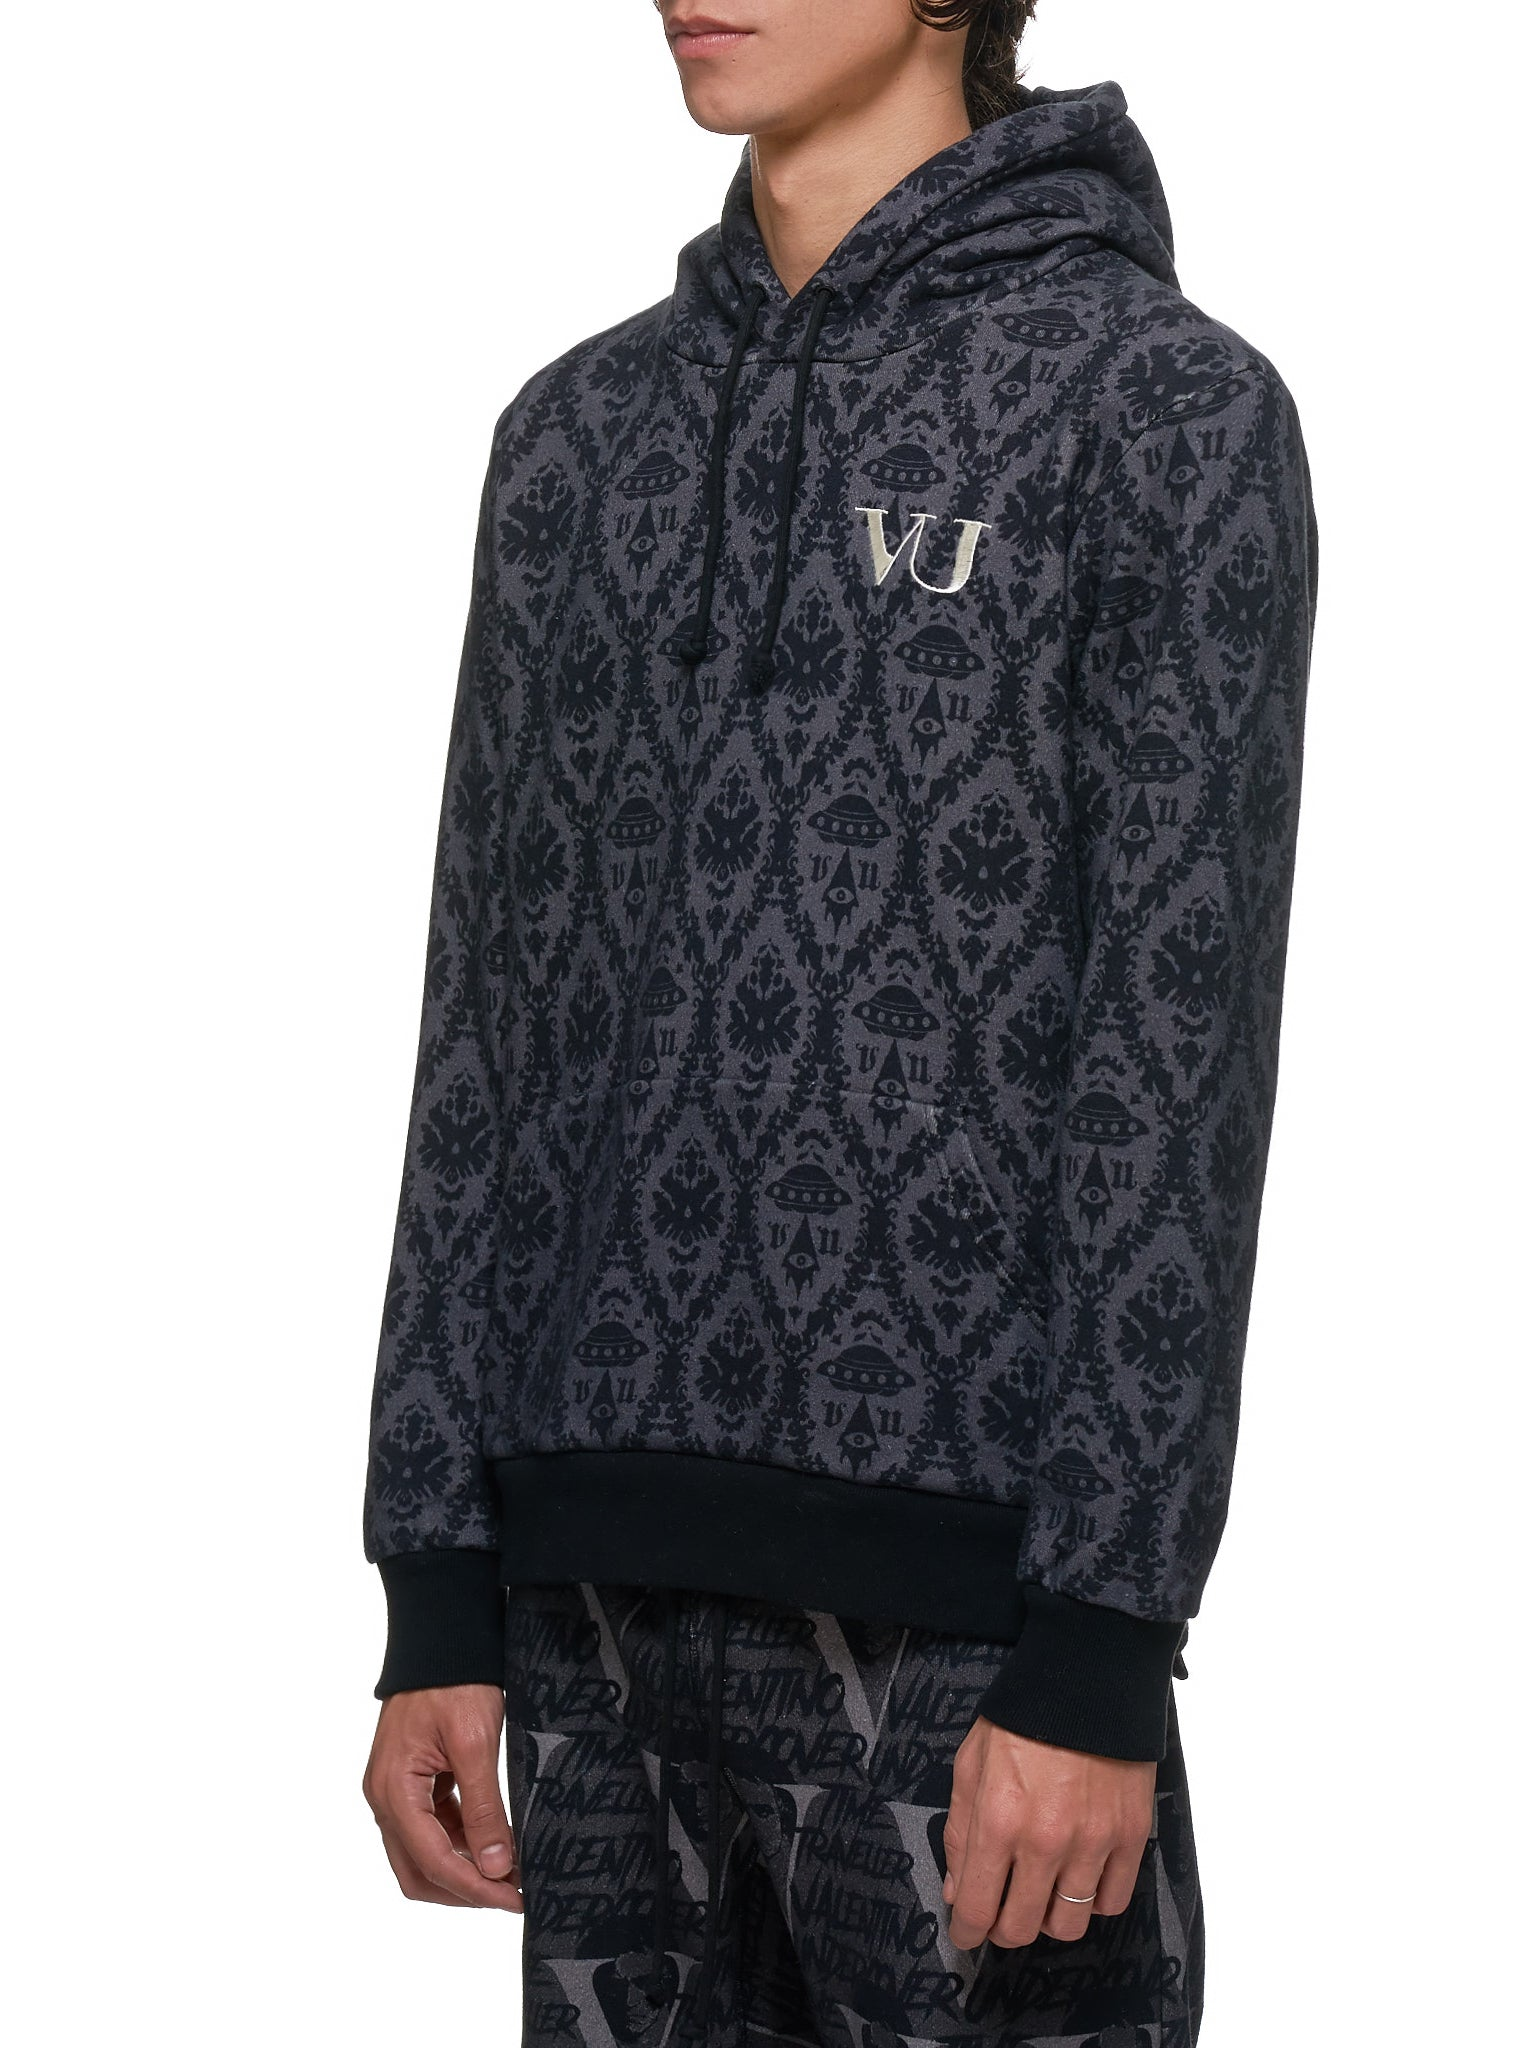 Undercover x Valentino hoodie - Hlorenzo Side